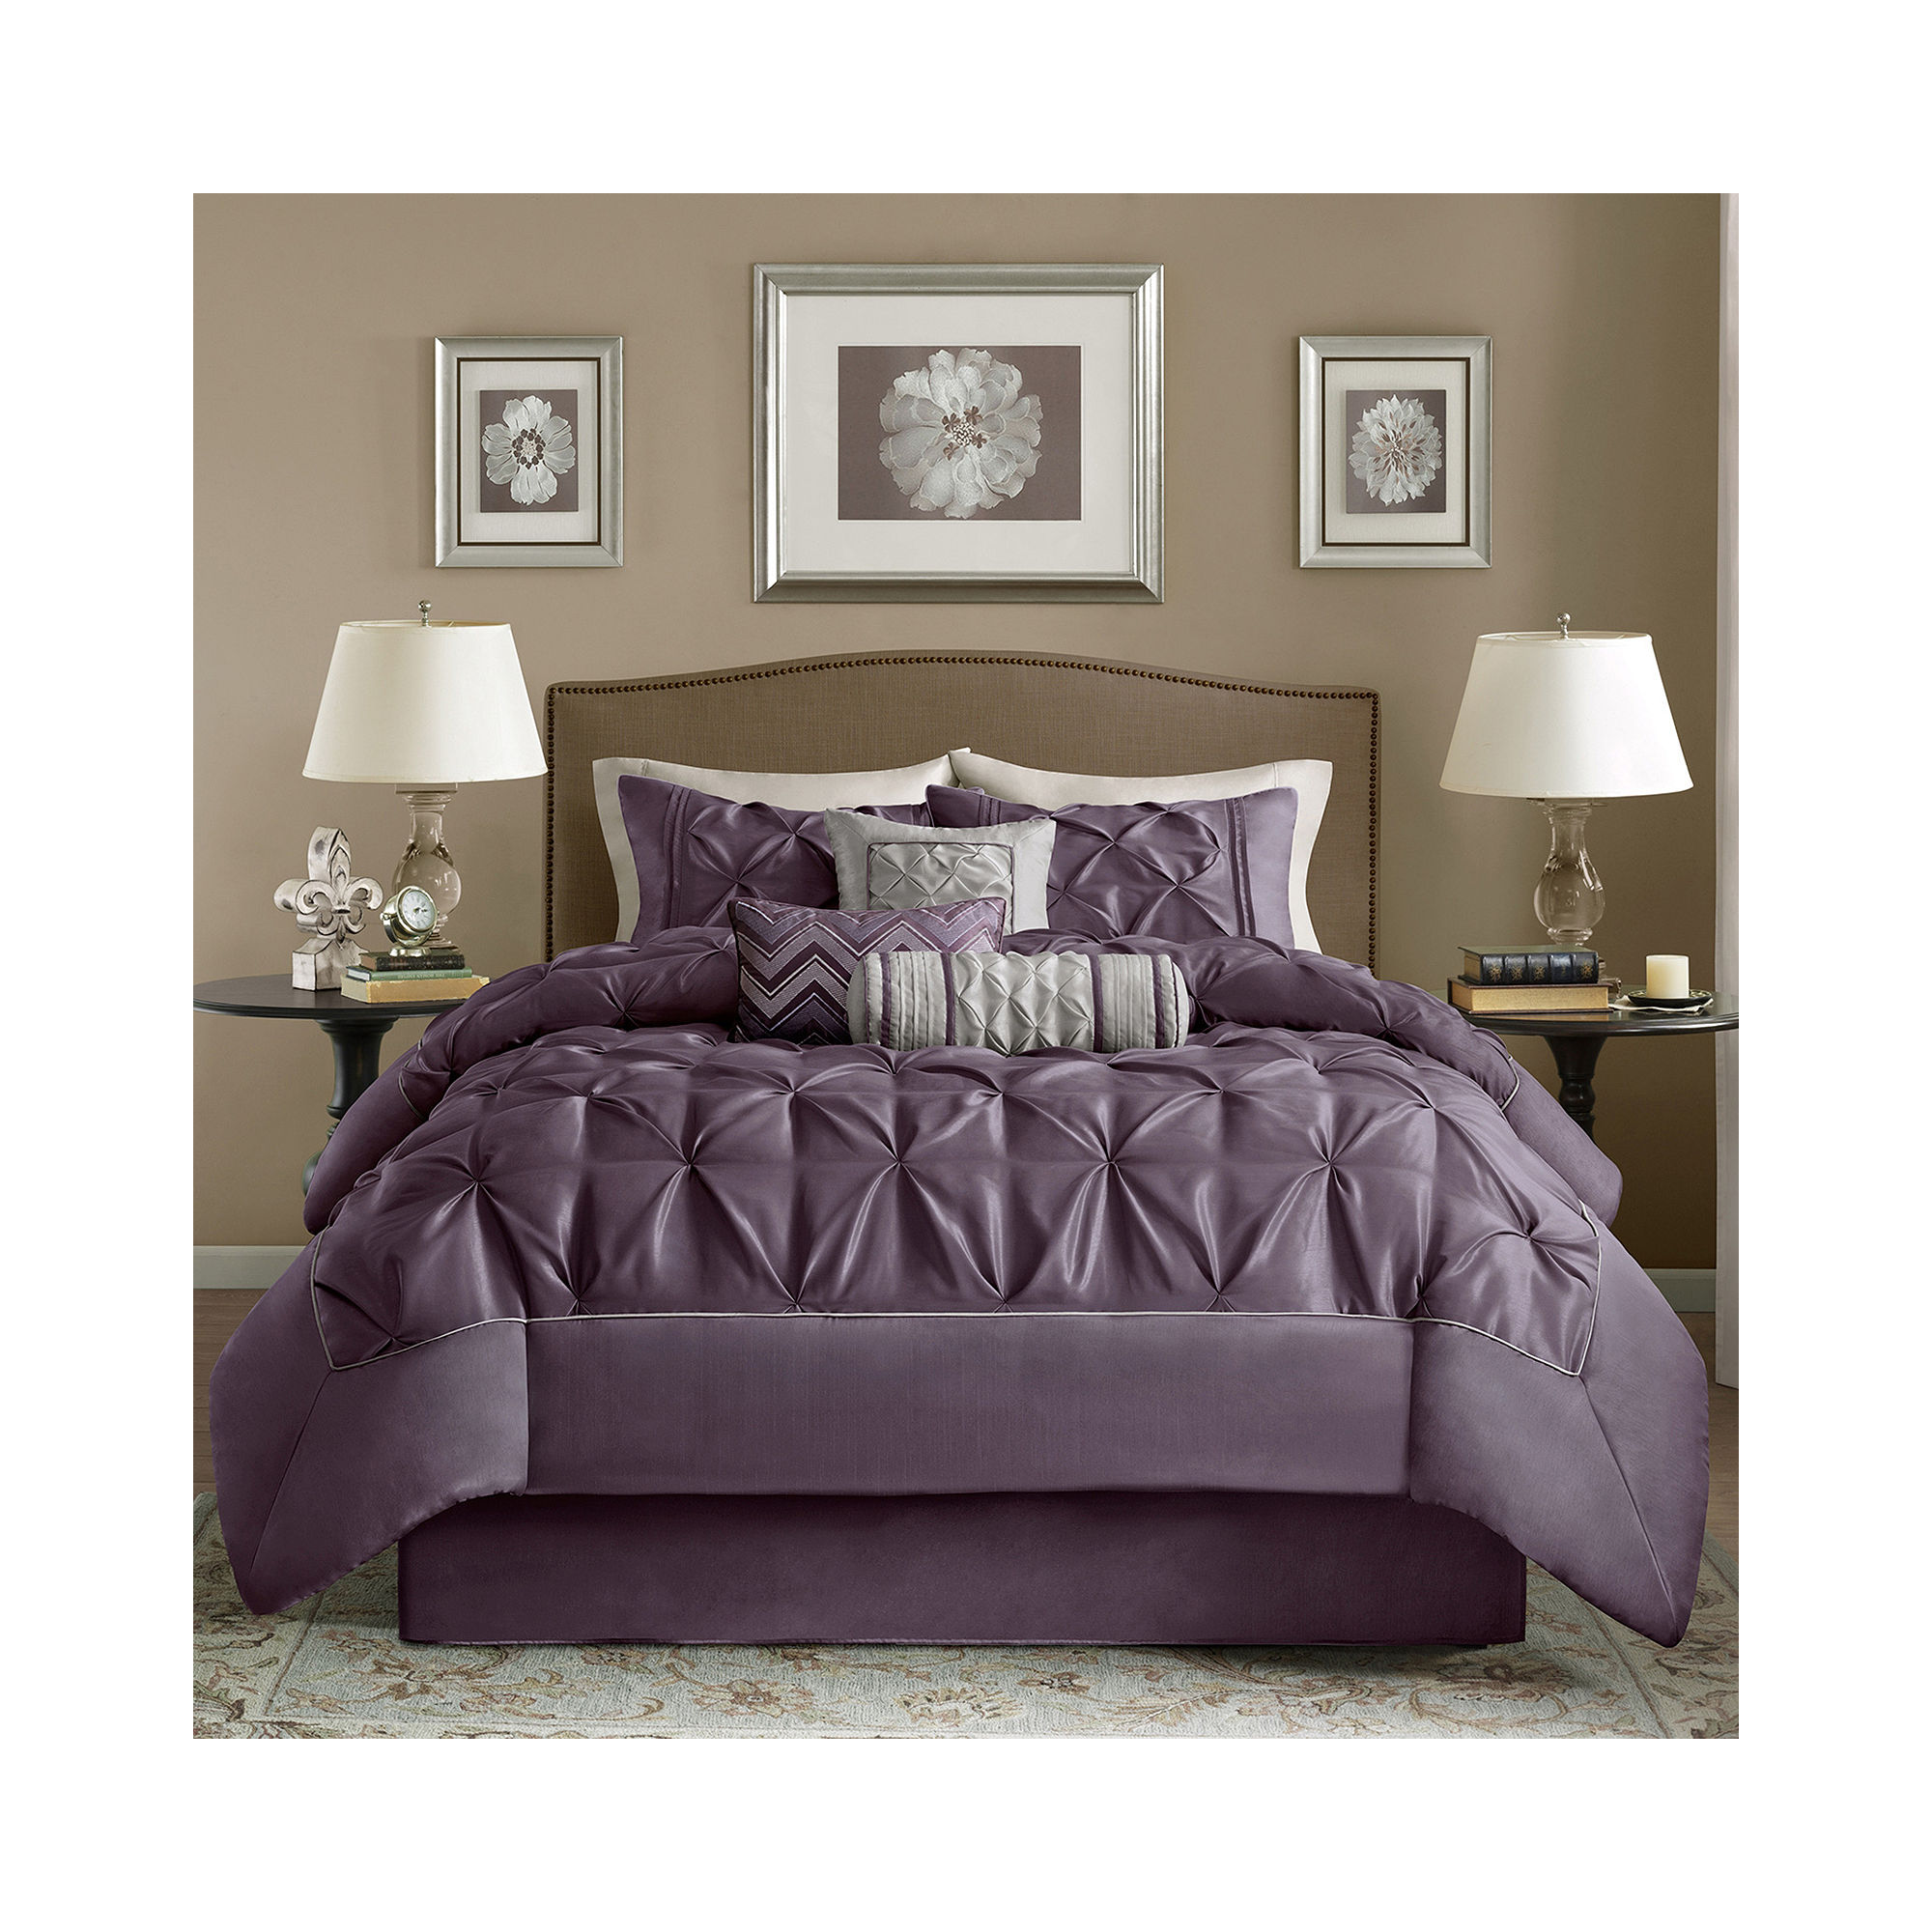 CHEAP JCPenney Home Belcourt 4-pc. Comforter Set NOW